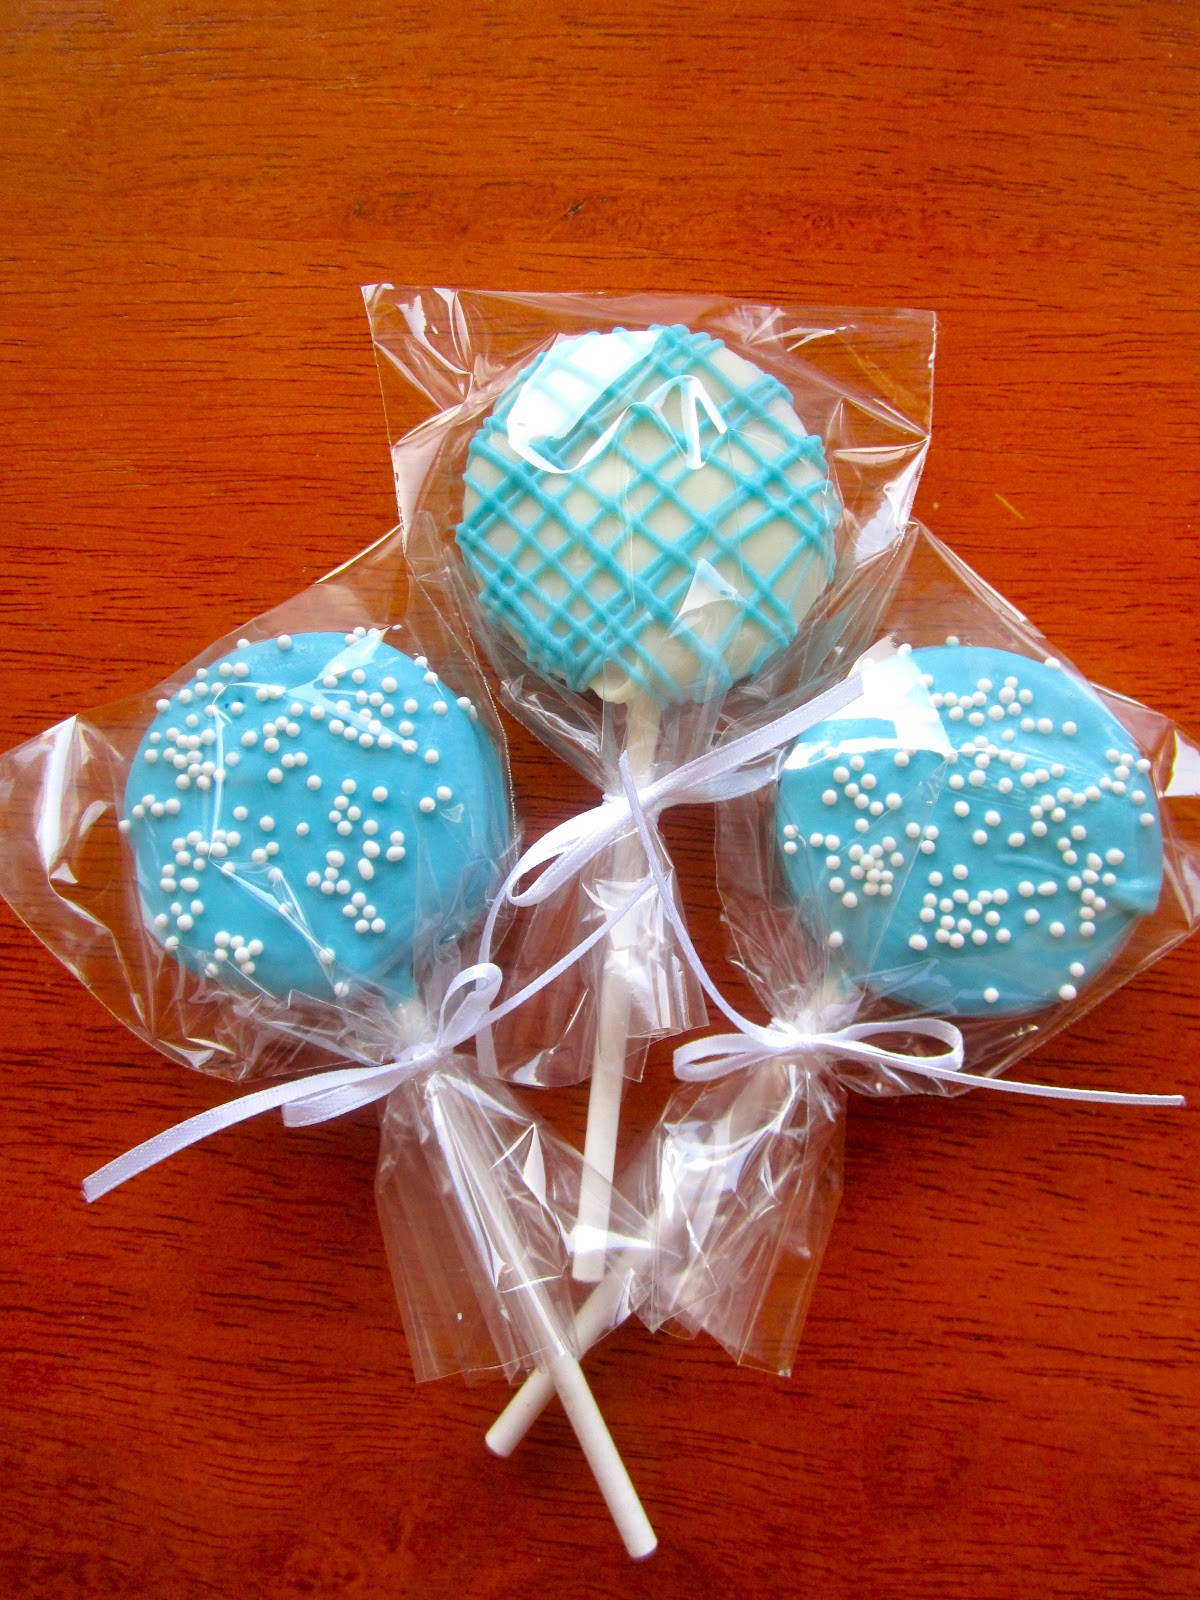 DIY Baby Shower Favors Ideas  25 DIY Baby Shower Favors